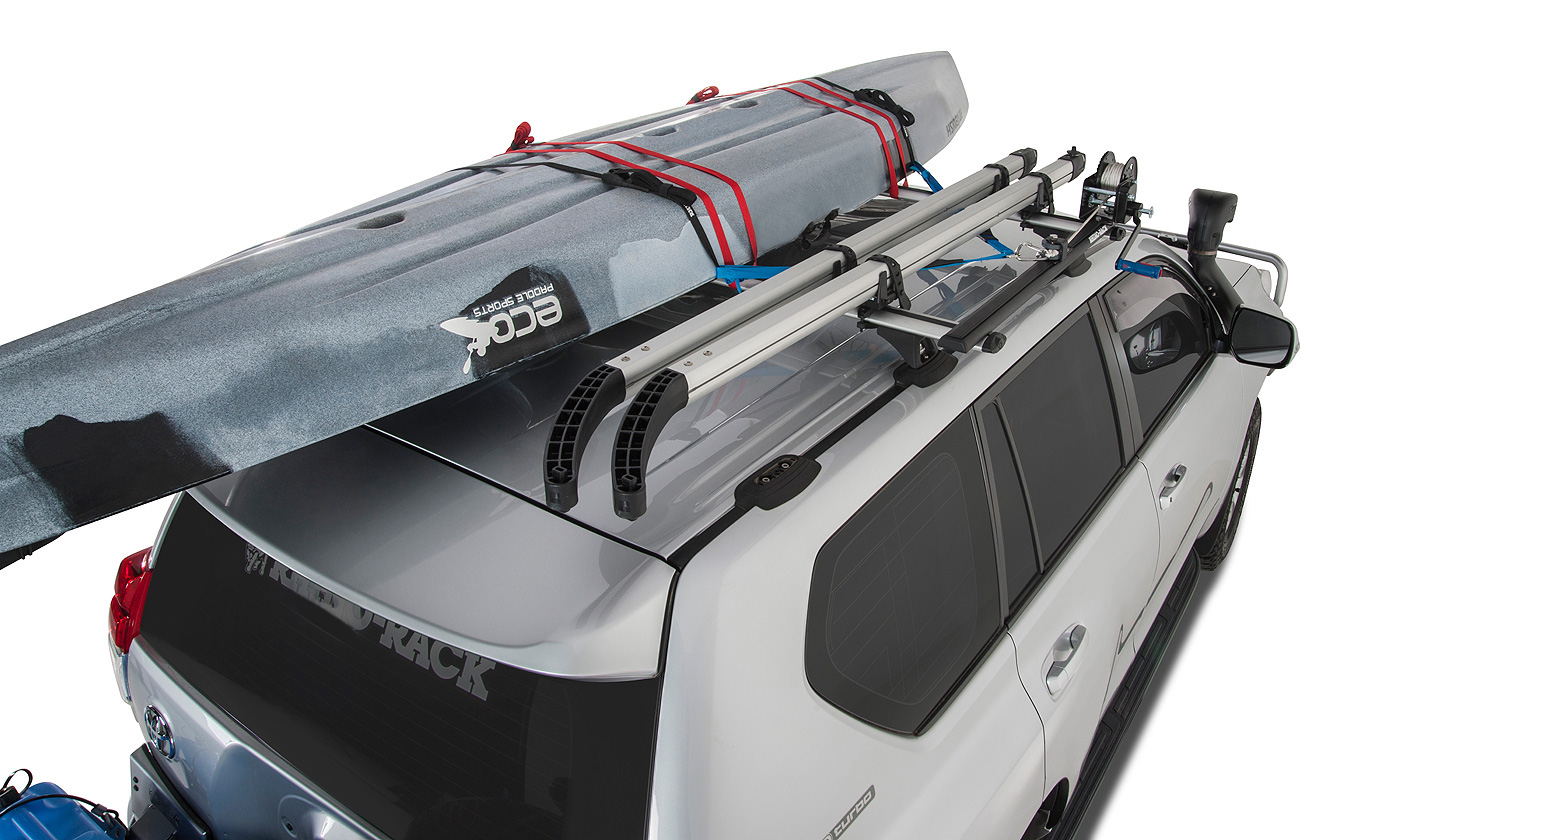 Nkl Nautic Kayak Lifter Rhino Rack